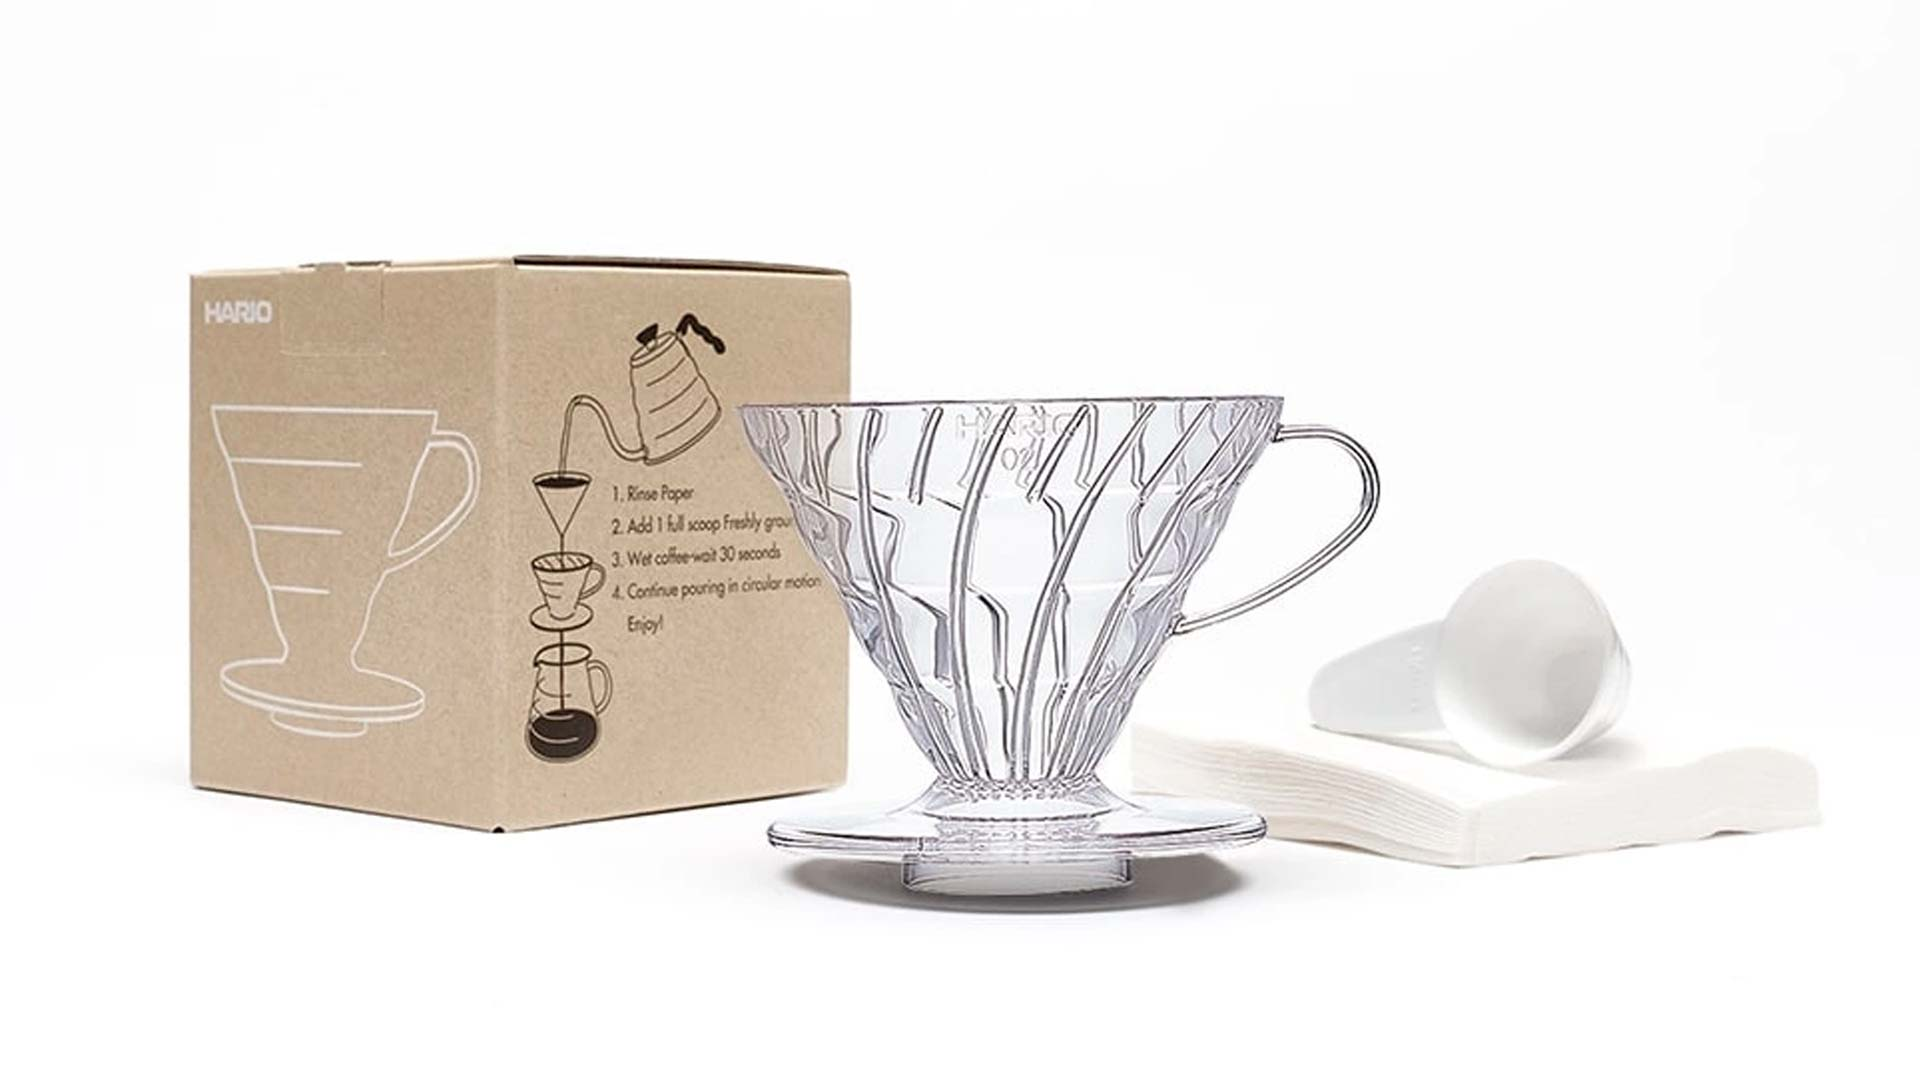 Hario V60 Coffee Dripper Set (Clear) - Includes 40 Filter Papers